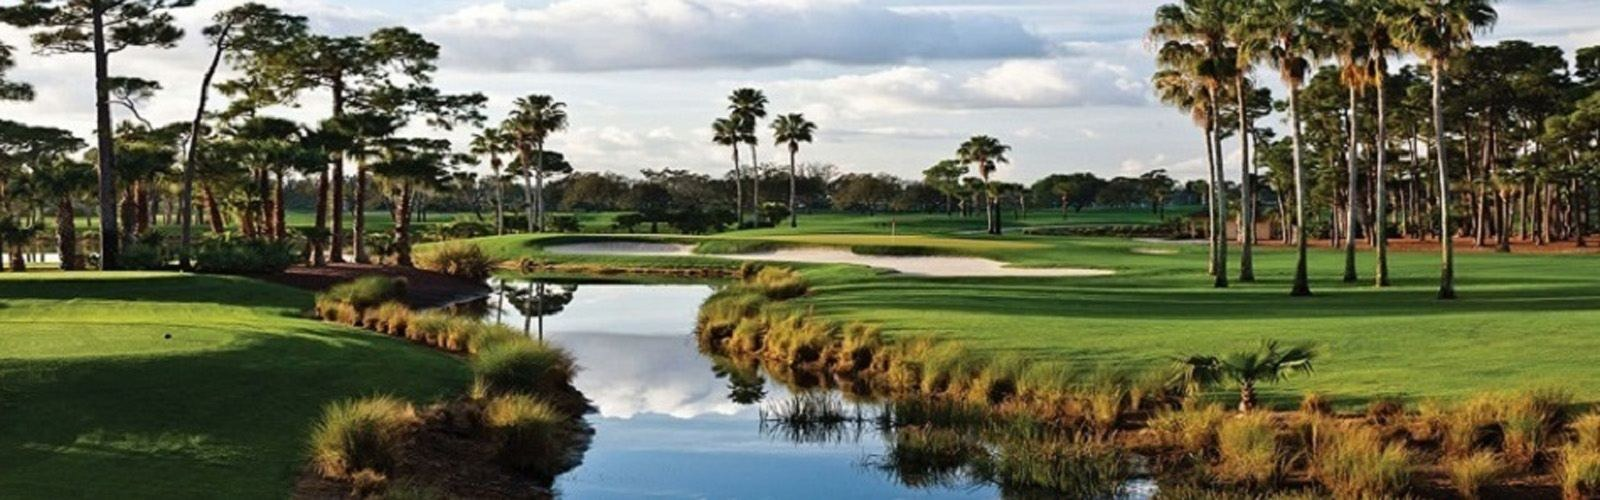 Golf Courses For Sale-Water Hazzard